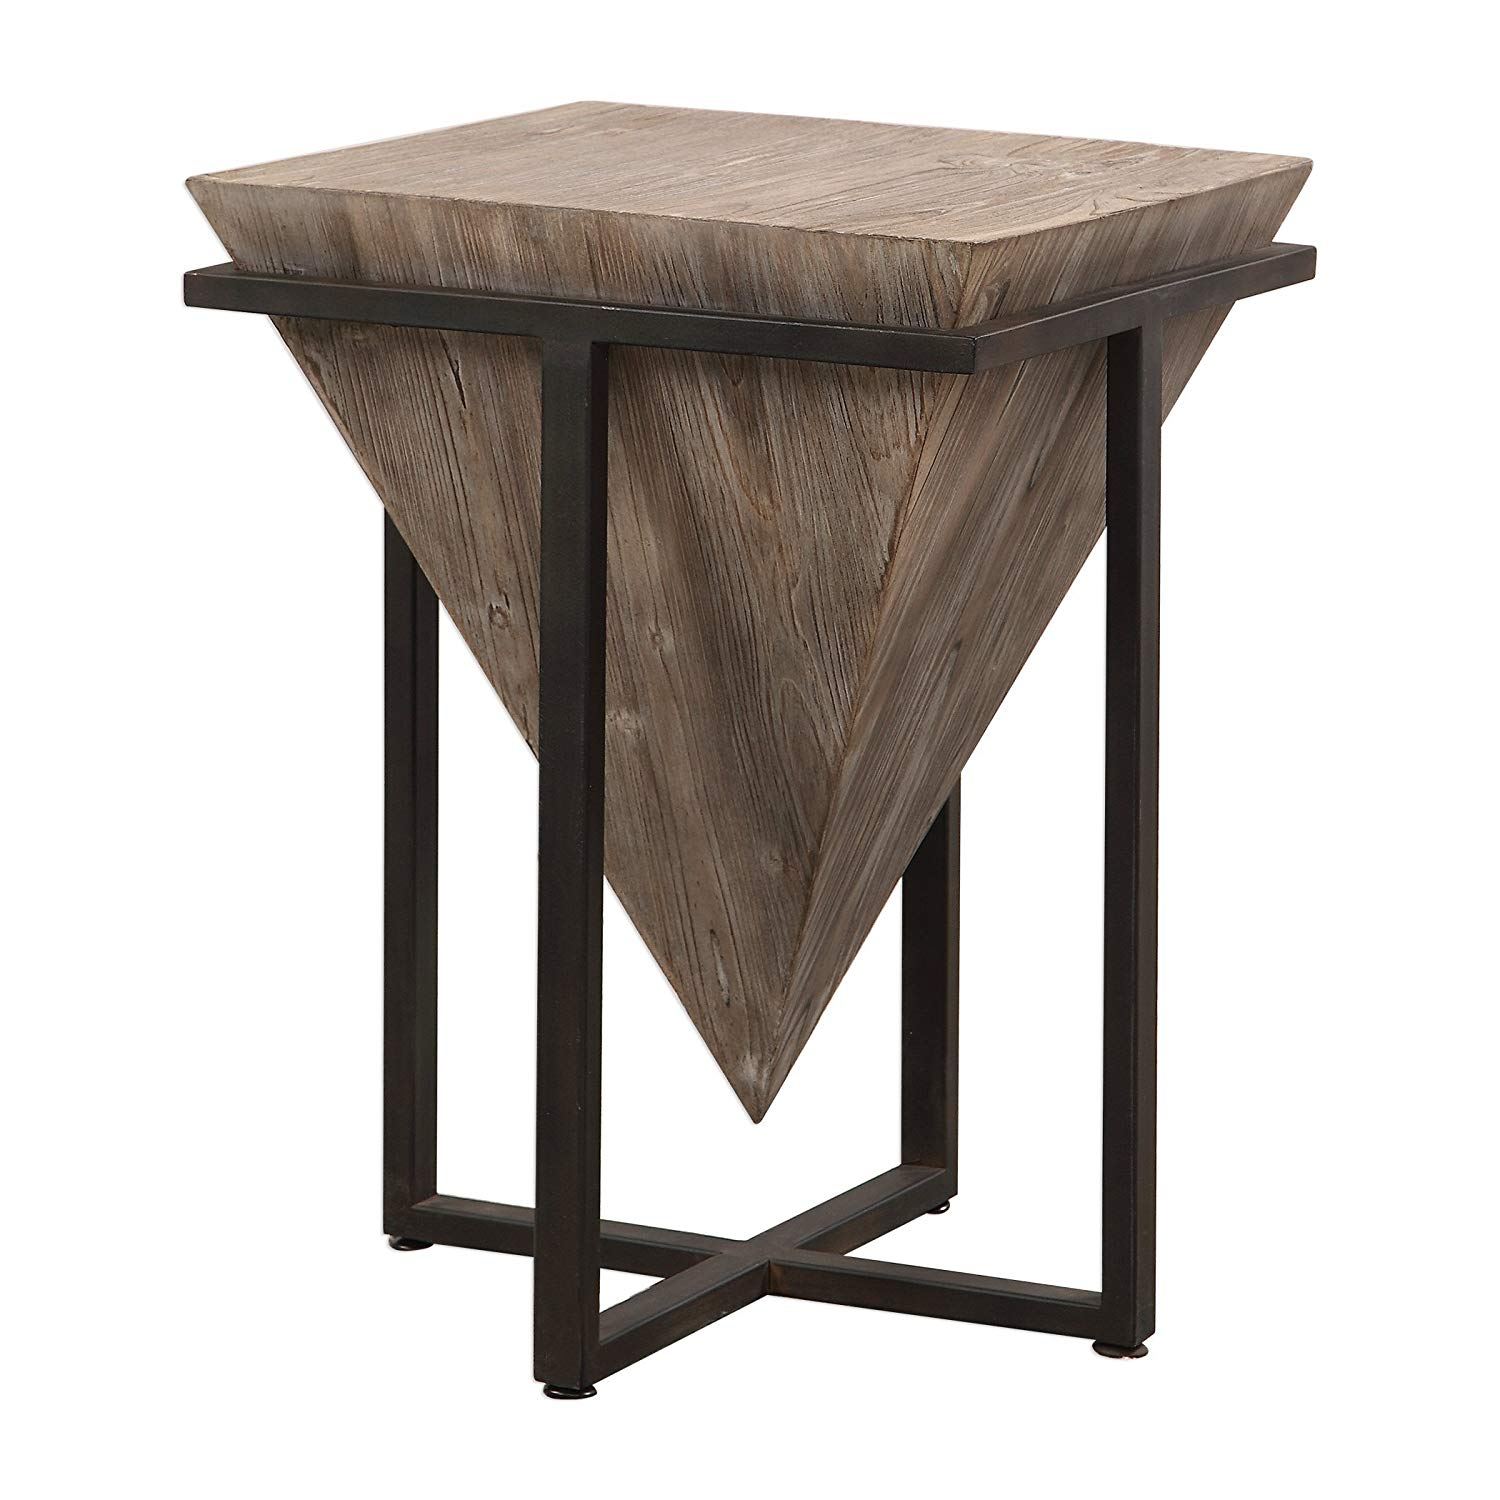 swanky home modern rustic industrial pyramid end wood block accent table geometric iron kitchen dining drum kit oak bedside cabinets throne seat only mini lamps pottery barn room